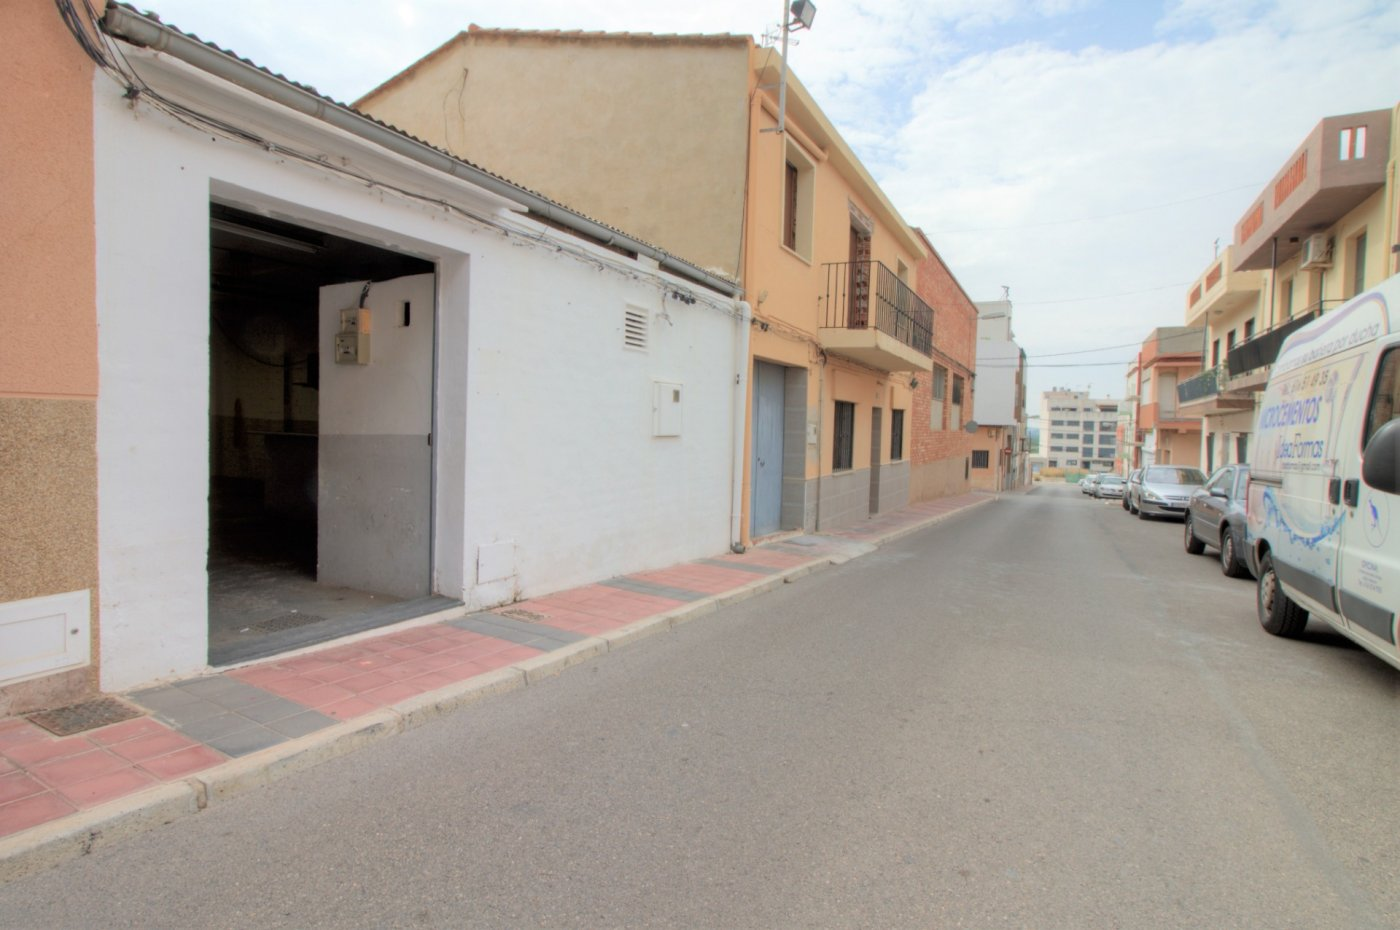 local-comercial en almenara · pueblo-estacio 32000€